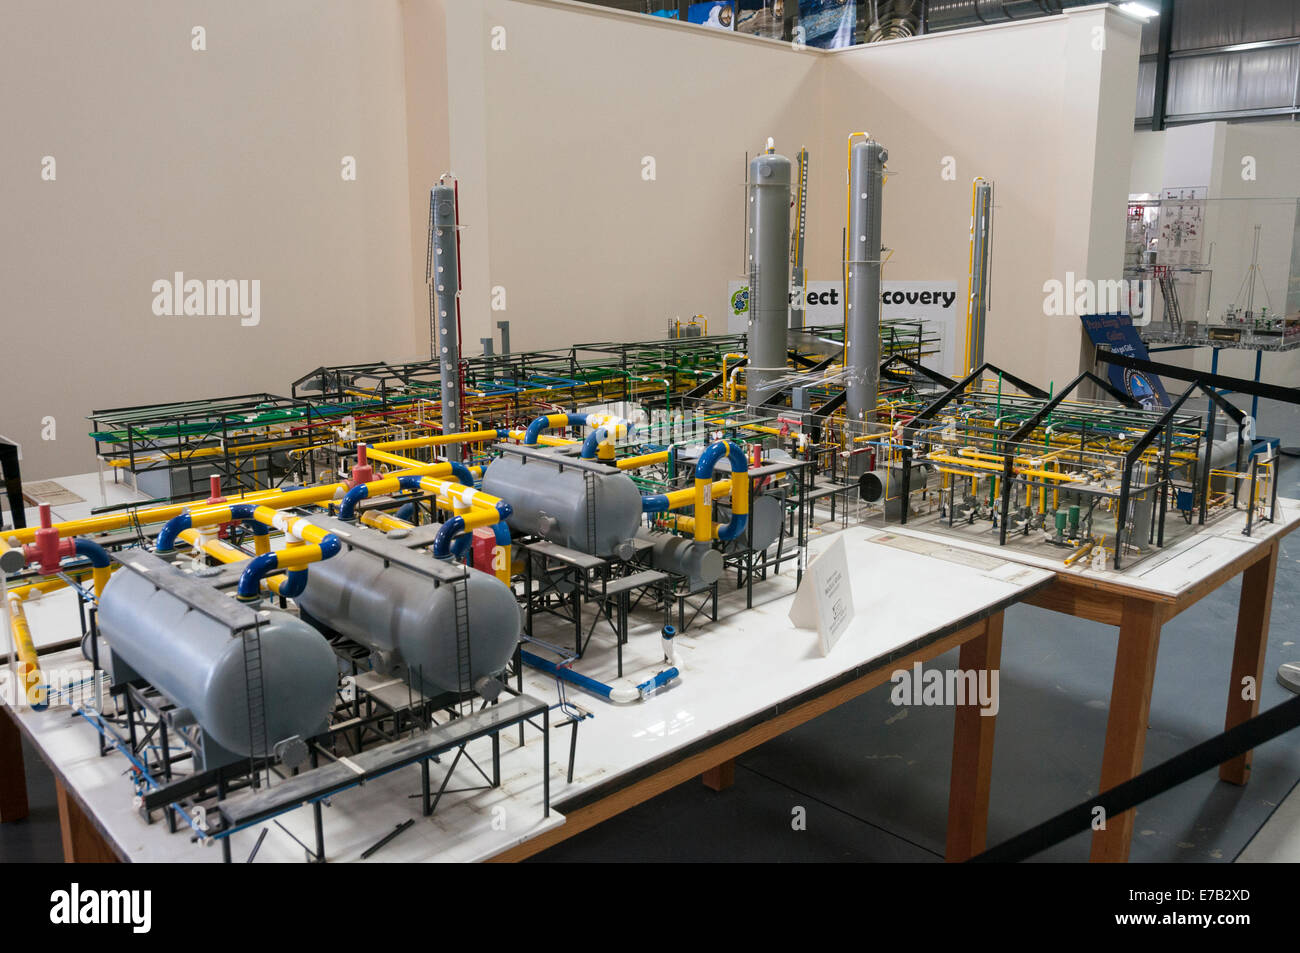 Elk203-5502 Canada, Alberta, Devon, Canadian Petroleum Discovery Center, model - Stock Image